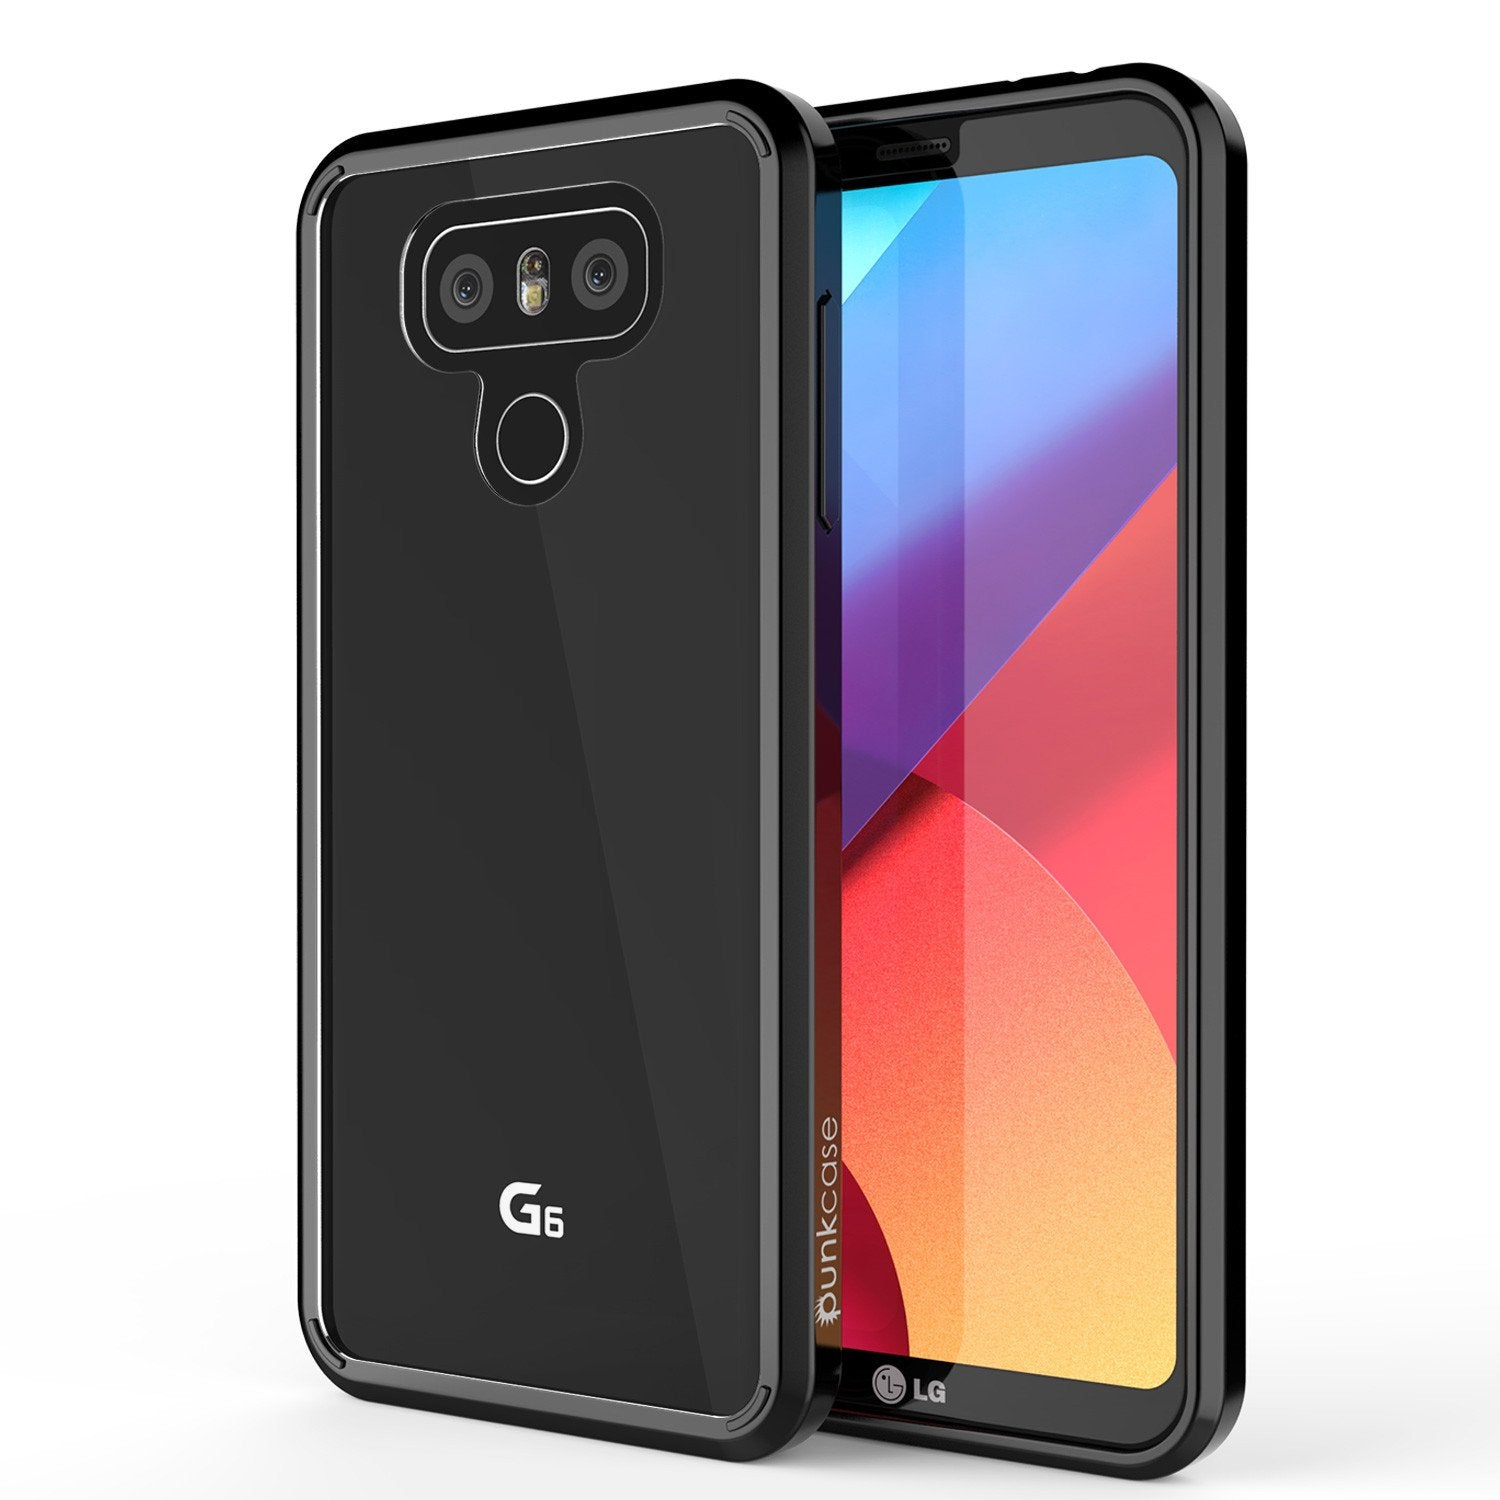 LG G6 Case Punkcase® LUCID 2.0 Black Series w/ PUNK SHIELD Screen Protector | Ultra Fit